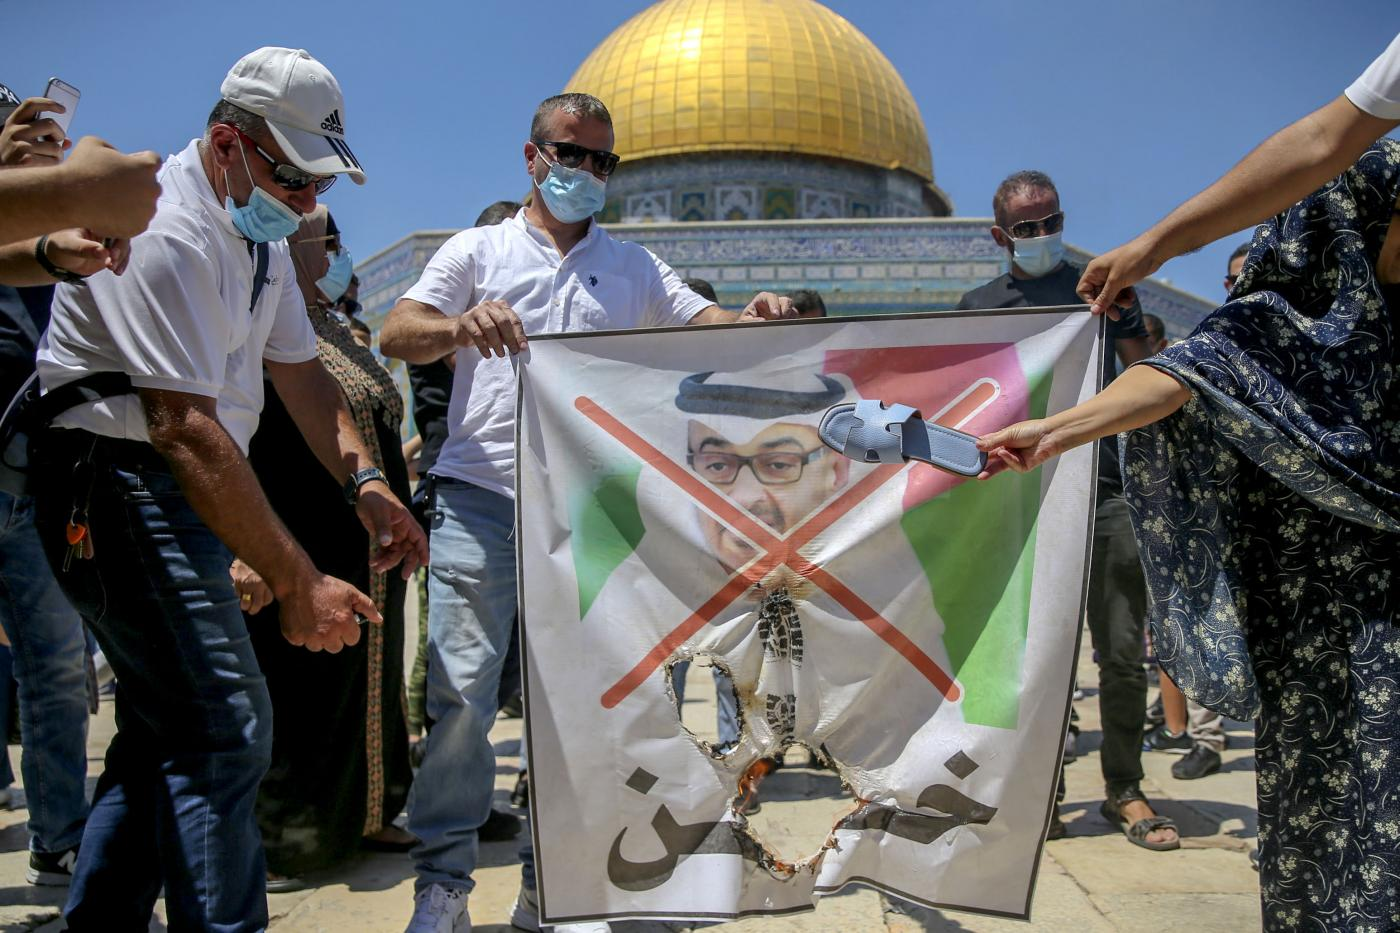 Palestinians protest in Jerusalem over the UAE-Israel diplomatic normalisation